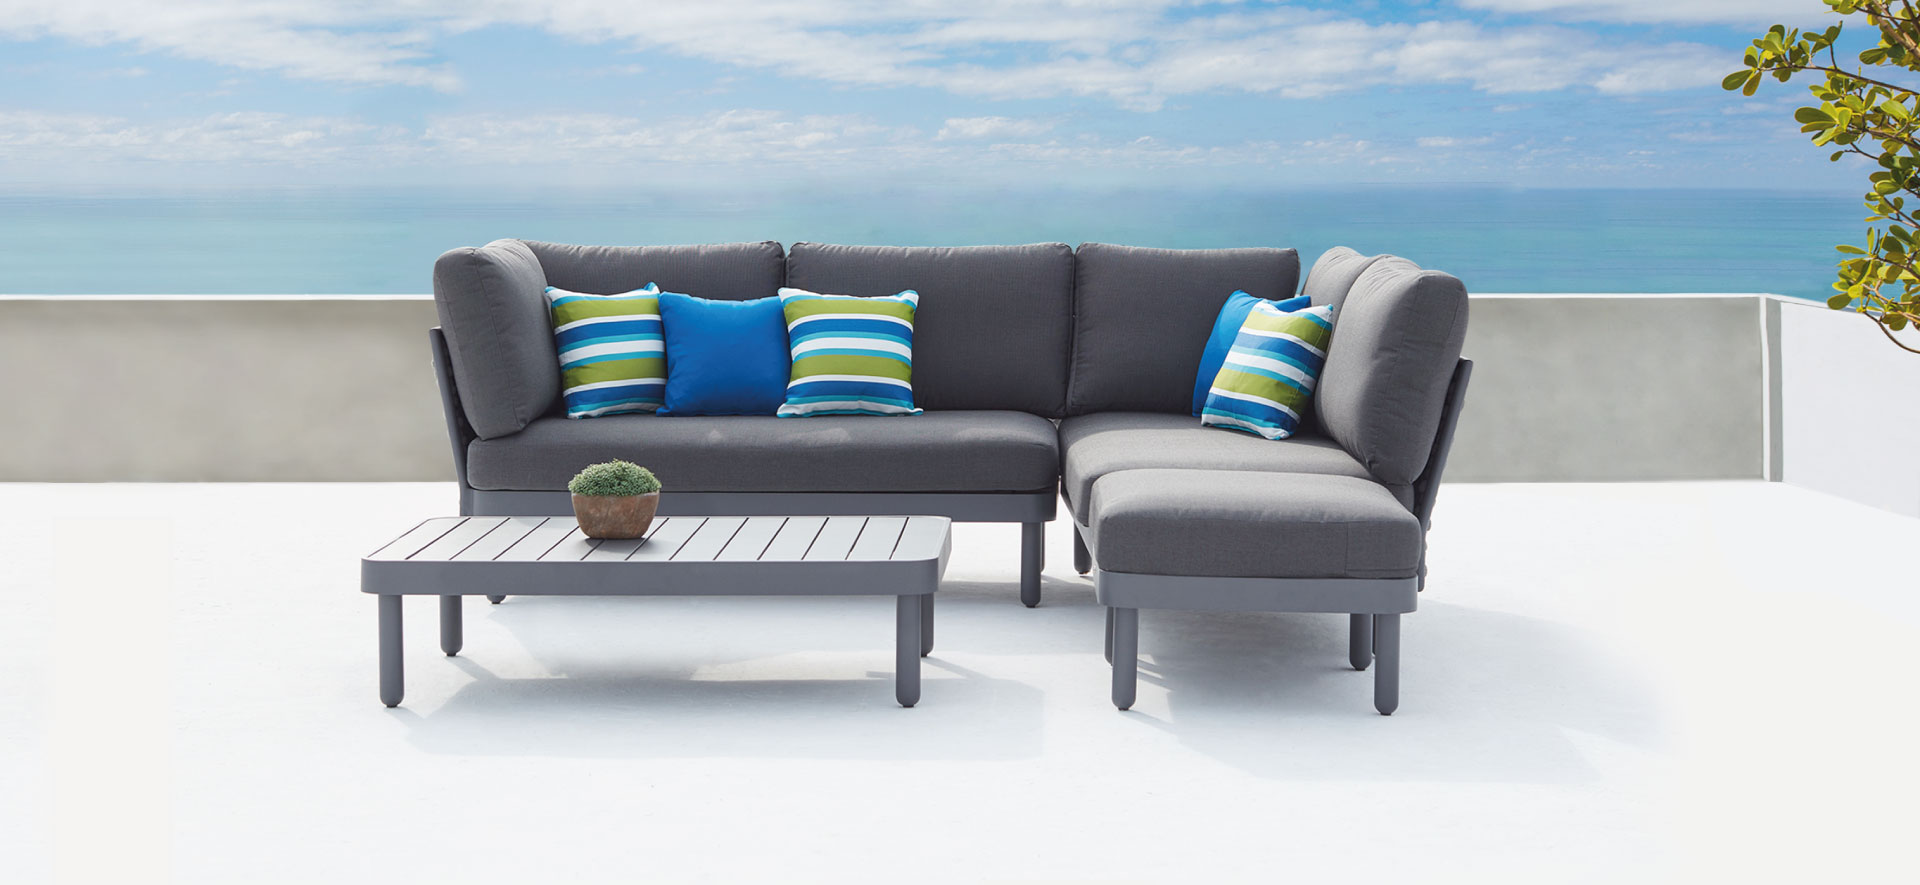 Milan Outdoor Furniture Sofas